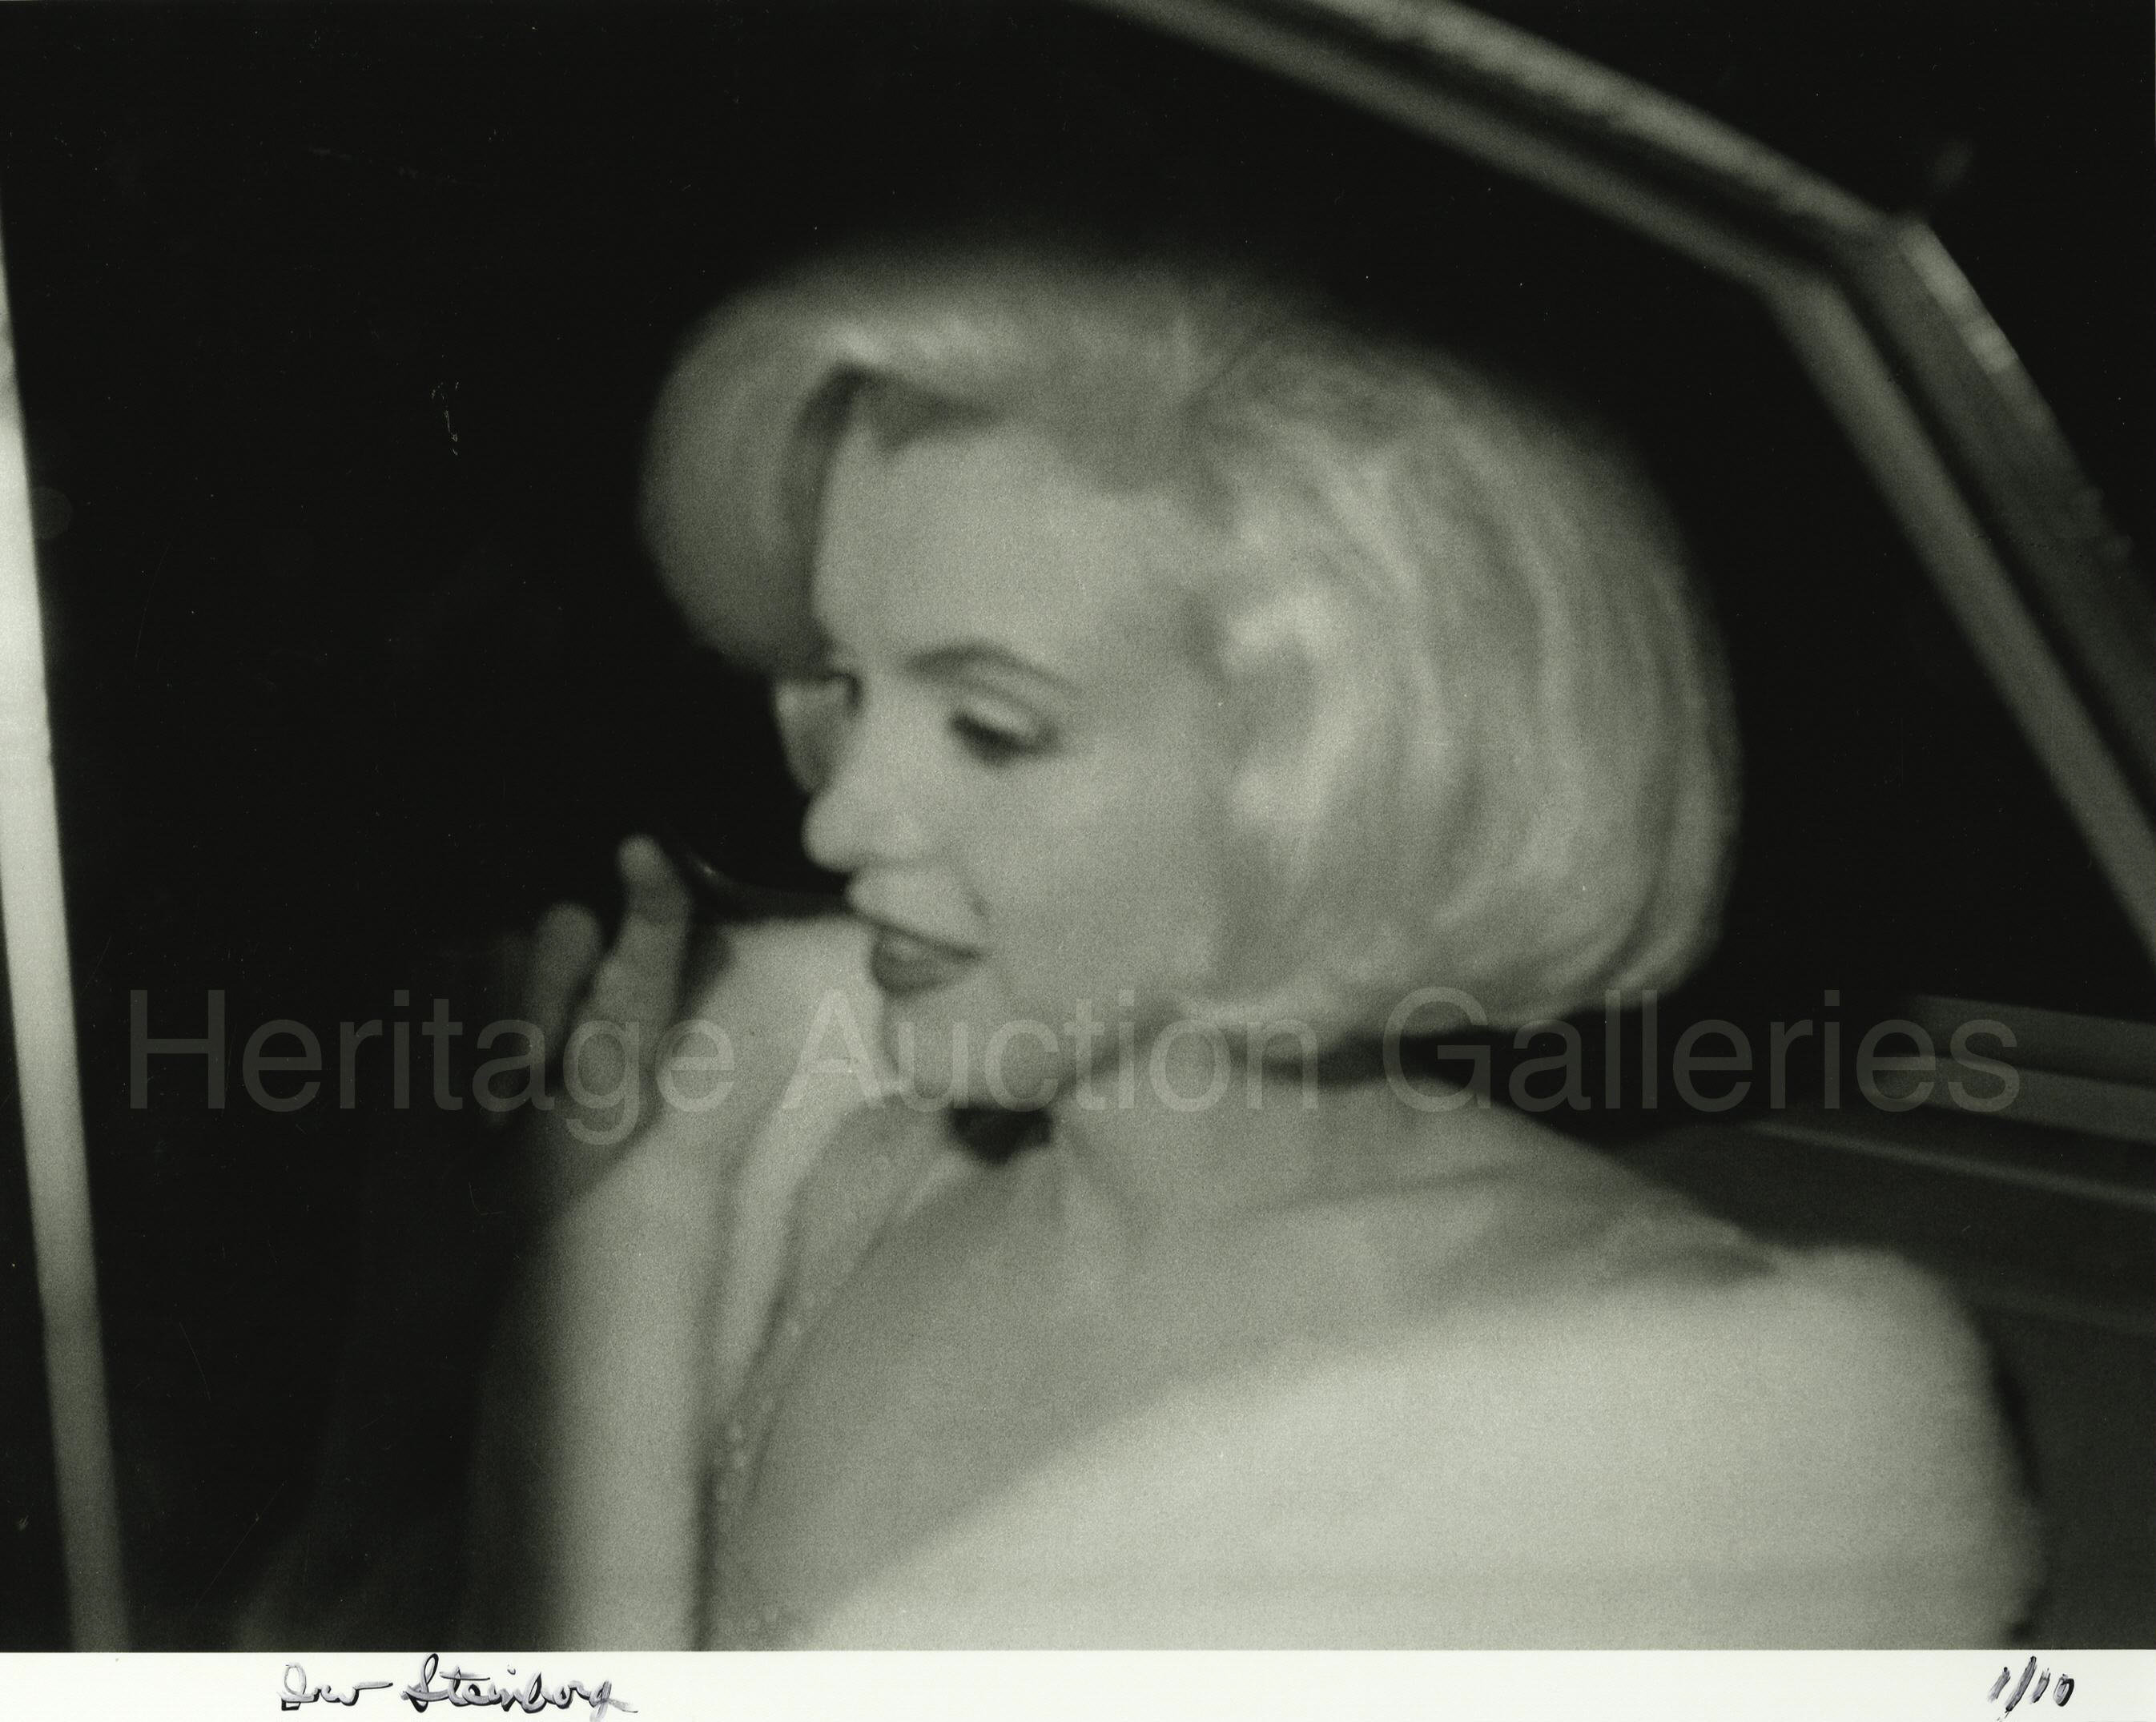 Marilyn Monroe Happy Birthday Mr President Limited Edition Lot 24115 Heritage Auctions